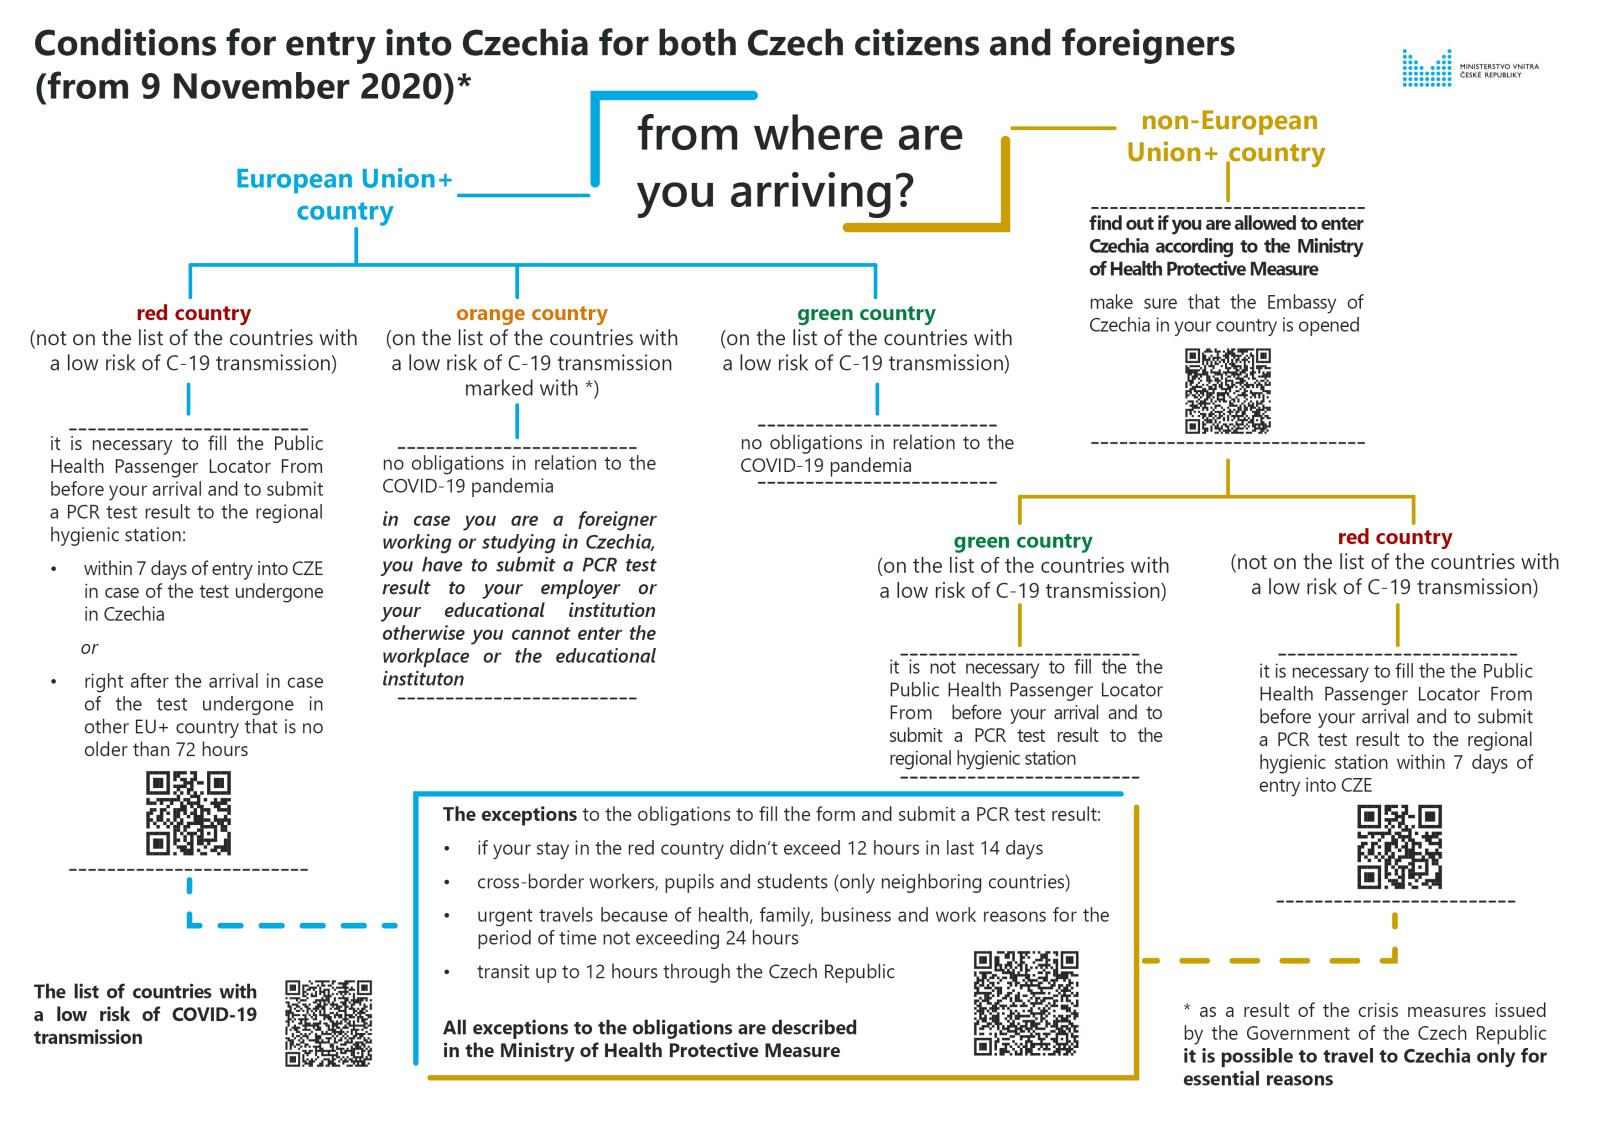 Conditions_for_entry_into_CZ_for_Czech_and_foreigners_from_November_17th_2020_-_20201116.jpg